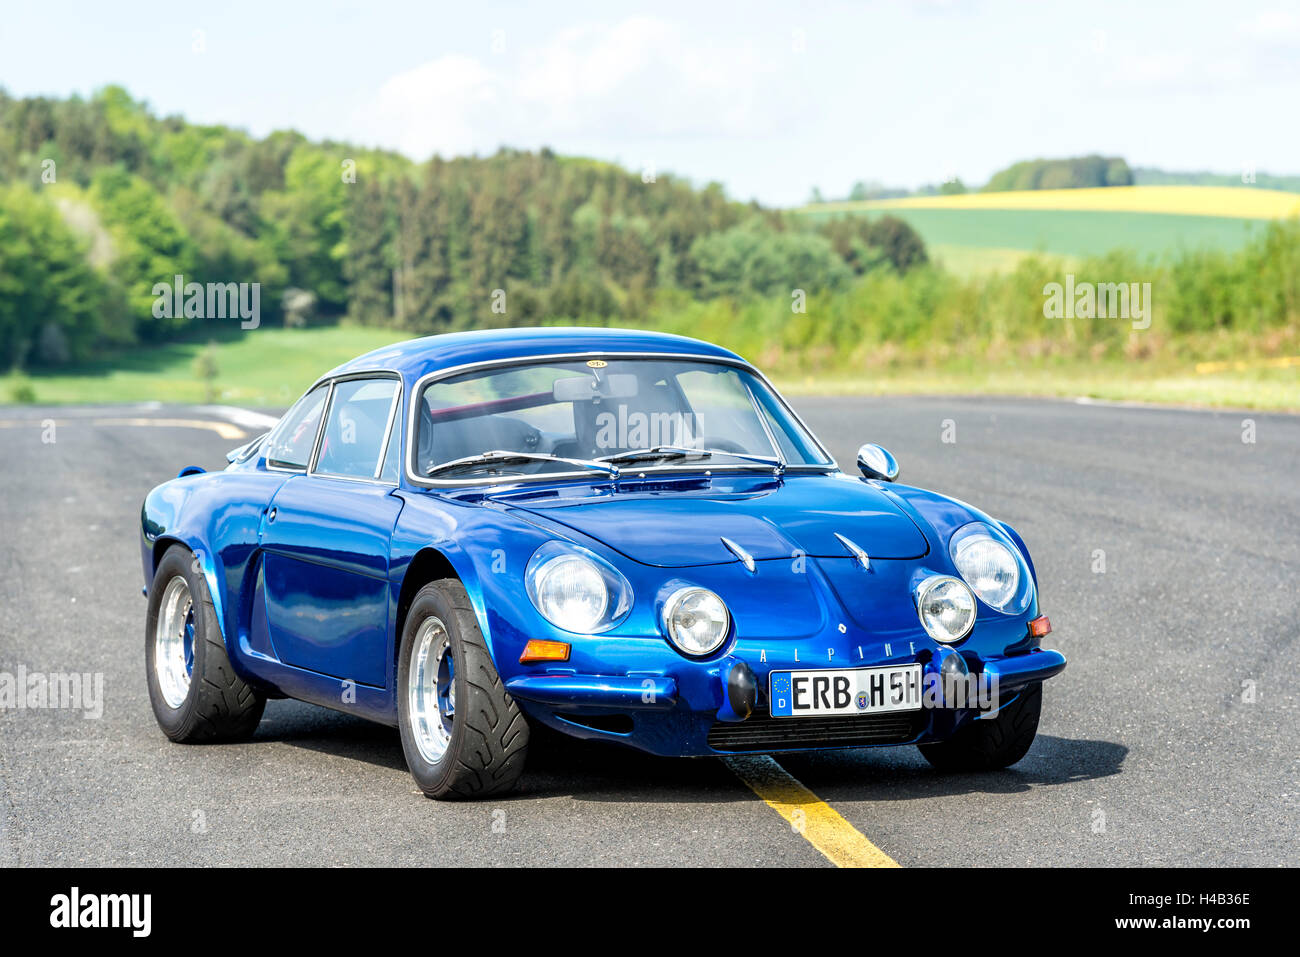 Michelstadt, Hesse, Germany, Renault Alpine A 110 SX, blue, built in 1976, 95 hp, engine capacity 1647ccm - Stock Image